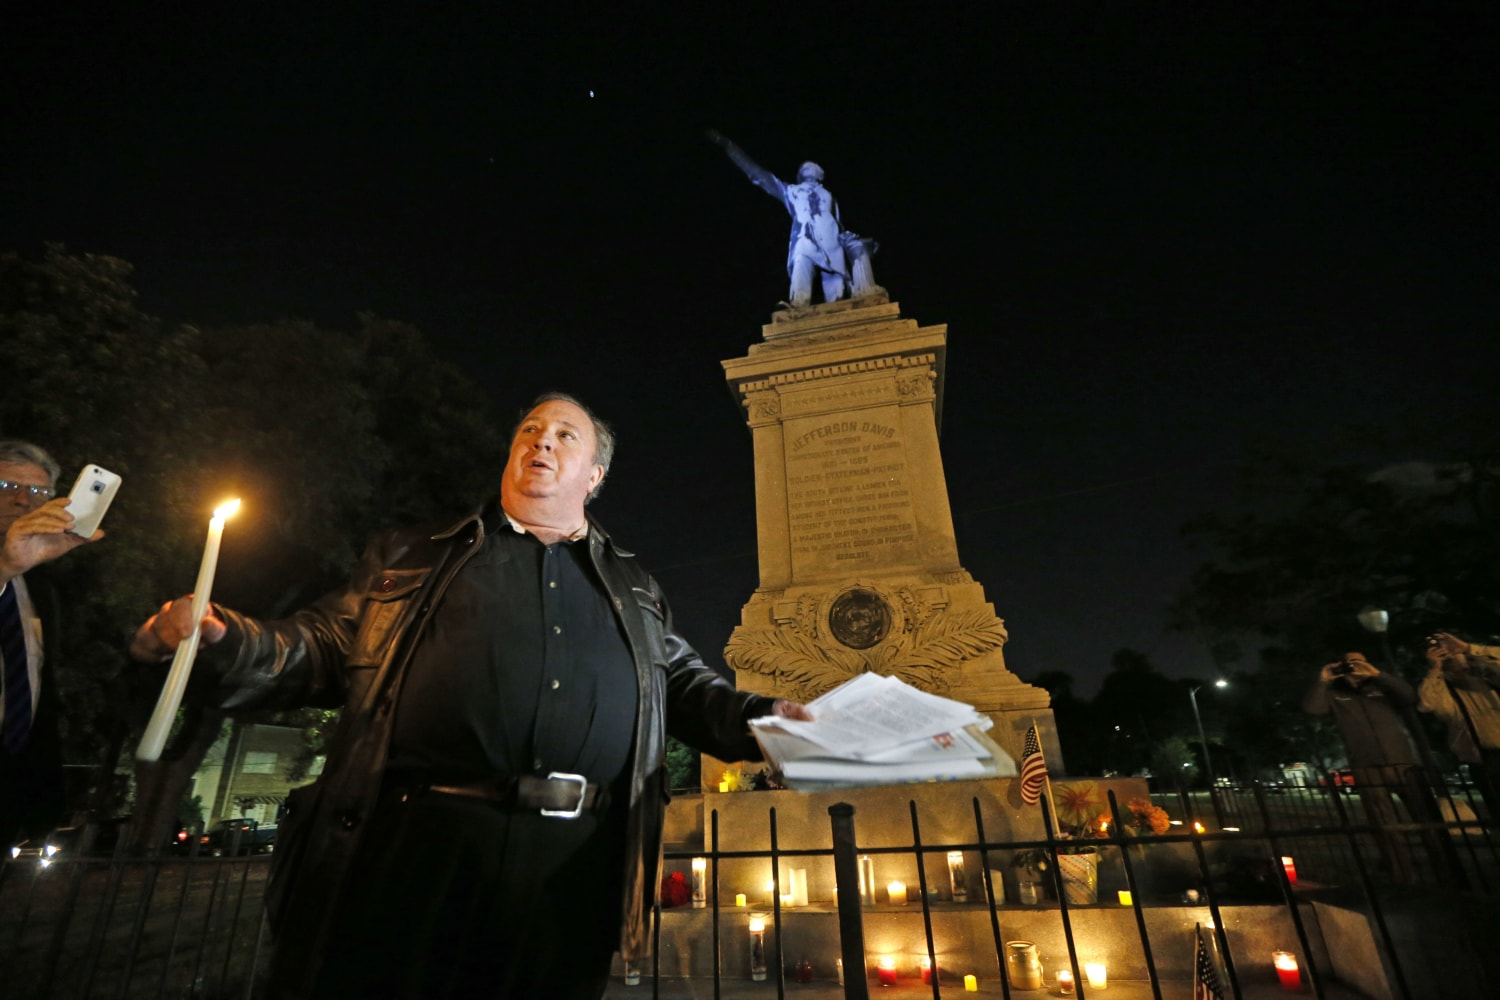 Mayor: City won't be deterred in statue removal